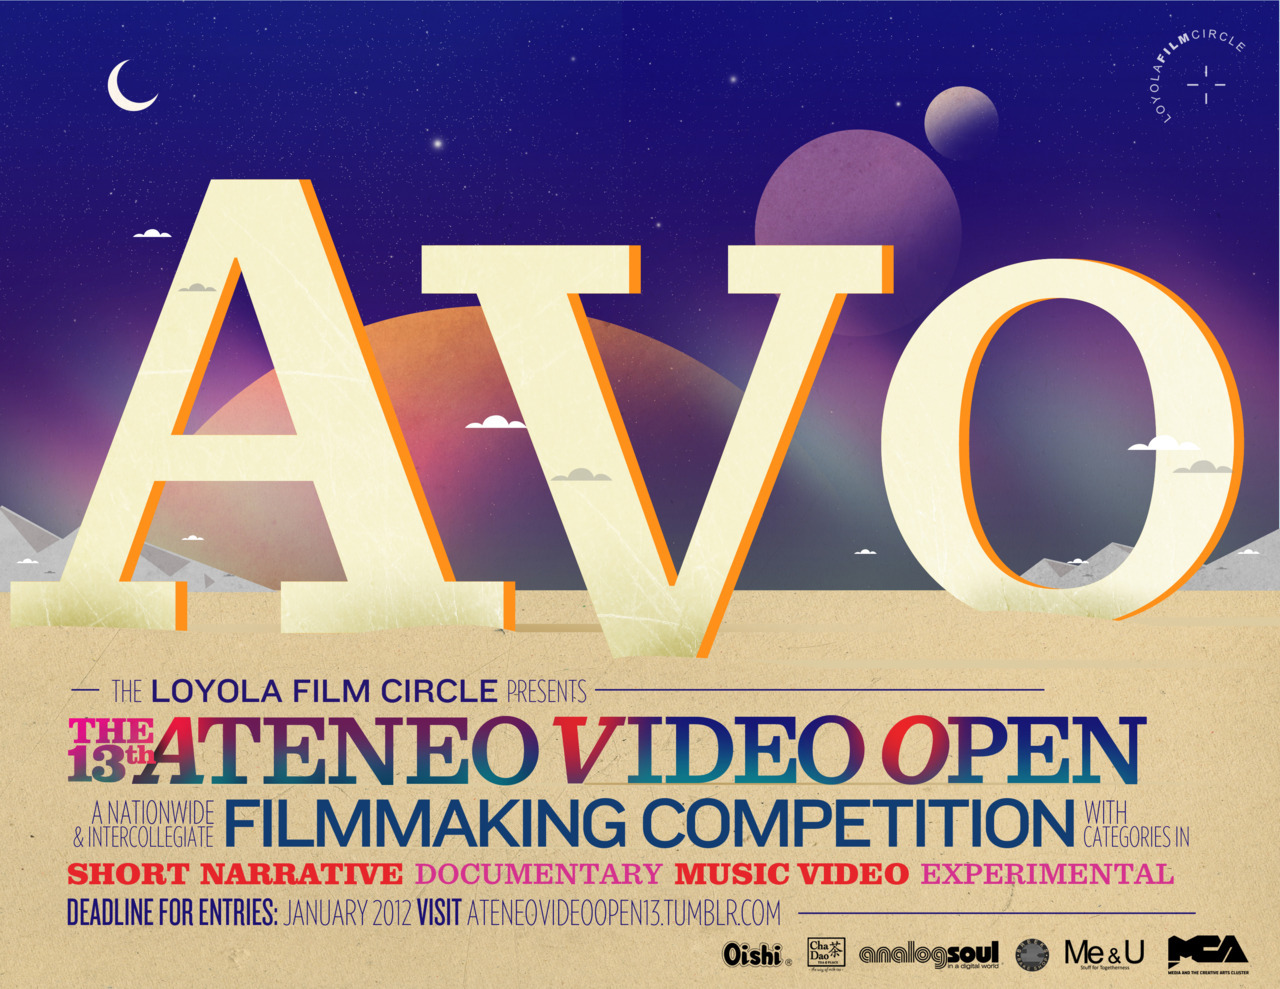 ateneovideoopen13:  Hey you! Did you make a FILM for your THESIS?Or made a VIDEO for a PROJECT?Or maybe, made a VIDEO with your friends just for fun?Interested in entering in a competition? It's your lucky day!Join the Ateneo Video Open 13!This is a great opportunity for you to exhibit your talent and passion for filmmaking!Deadline of submission of entries is on January 27, 2012 For inquiries, contact the AVO Team through ateneovideoopen13@yahoo.com.ph . You can also contact Will Fernandez at 09175358025 or Hanna Abdulrahman at 09178526145.